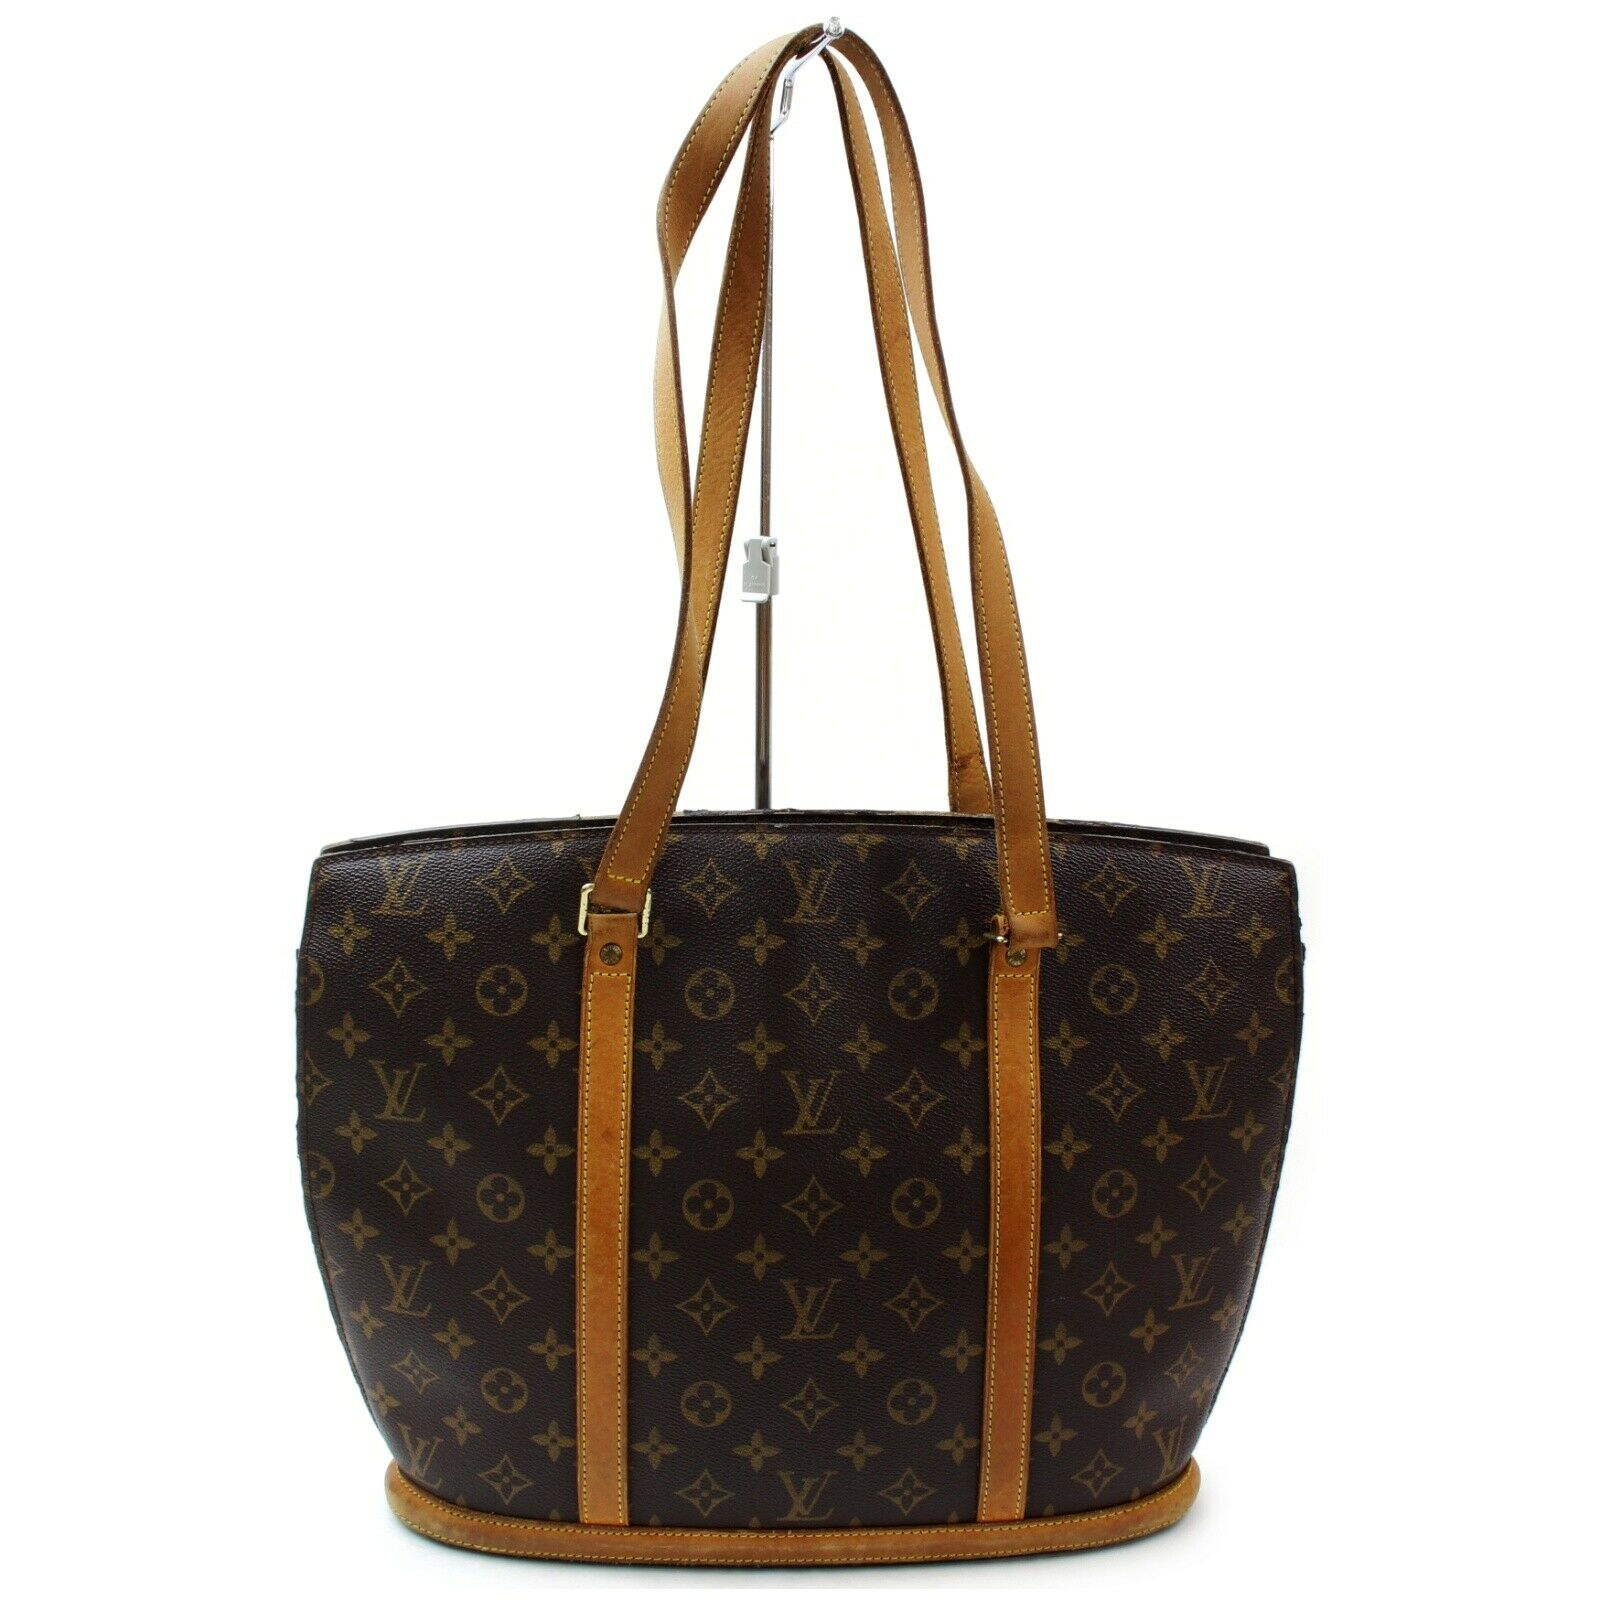 Louis Vuitton Babylone M51102 Brown Monogram Tote Bag 11392 - eModaOutlet